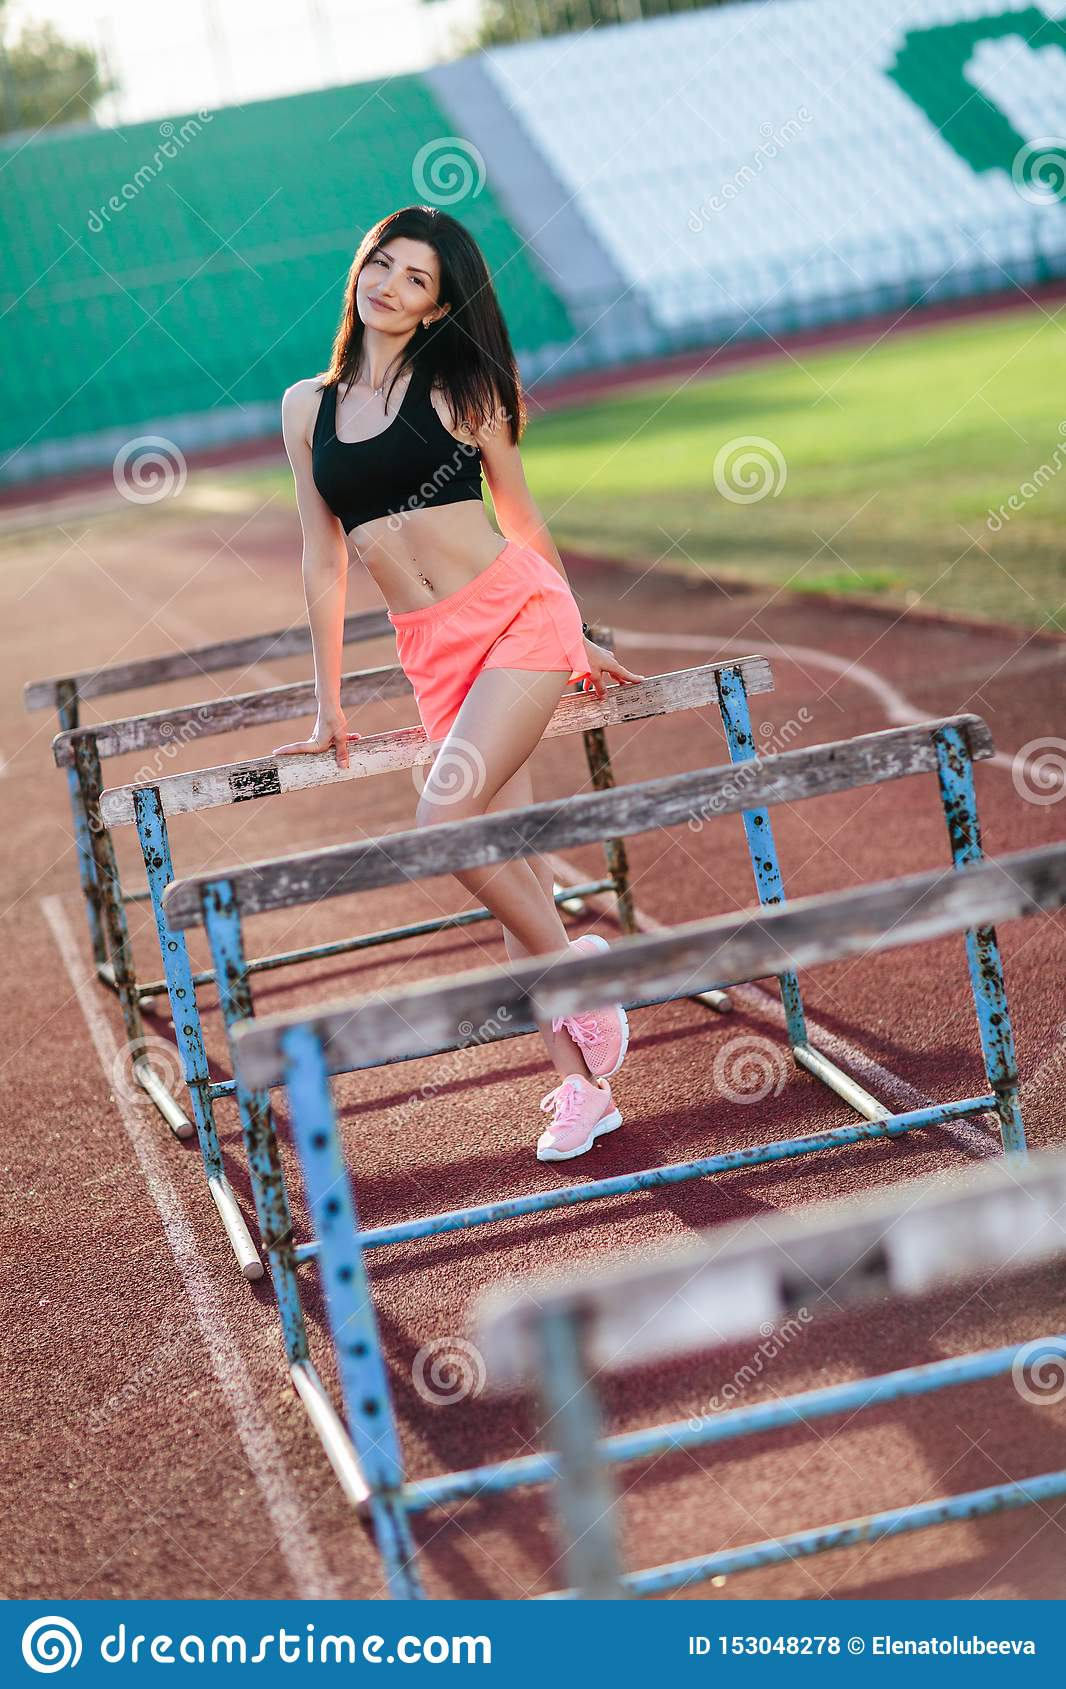 Young brunette woman athlete on stadium sporty lifestyle standing on track posing near the barriers running jumping to camera